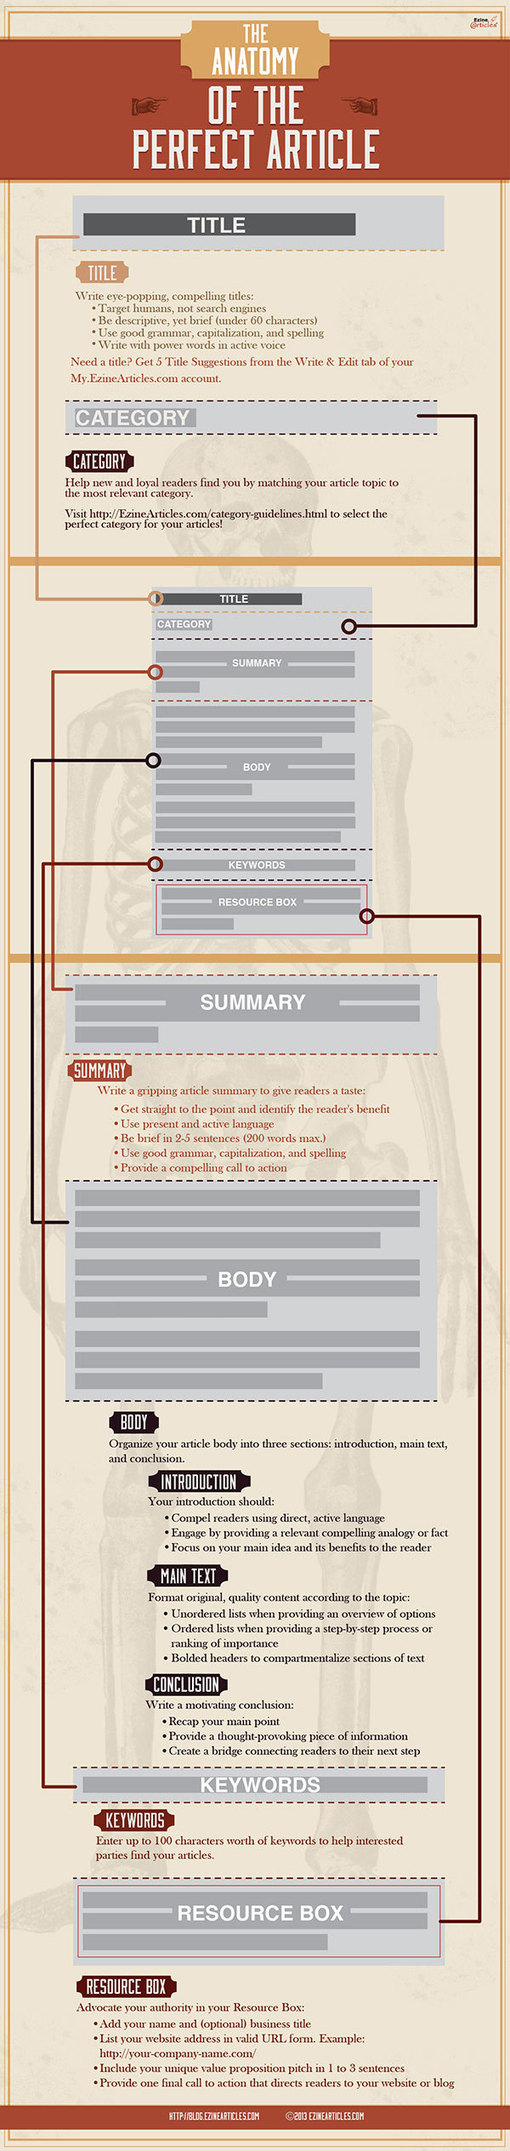 How To Write A Perfect Article For A Blog – An Anatomy Infographic